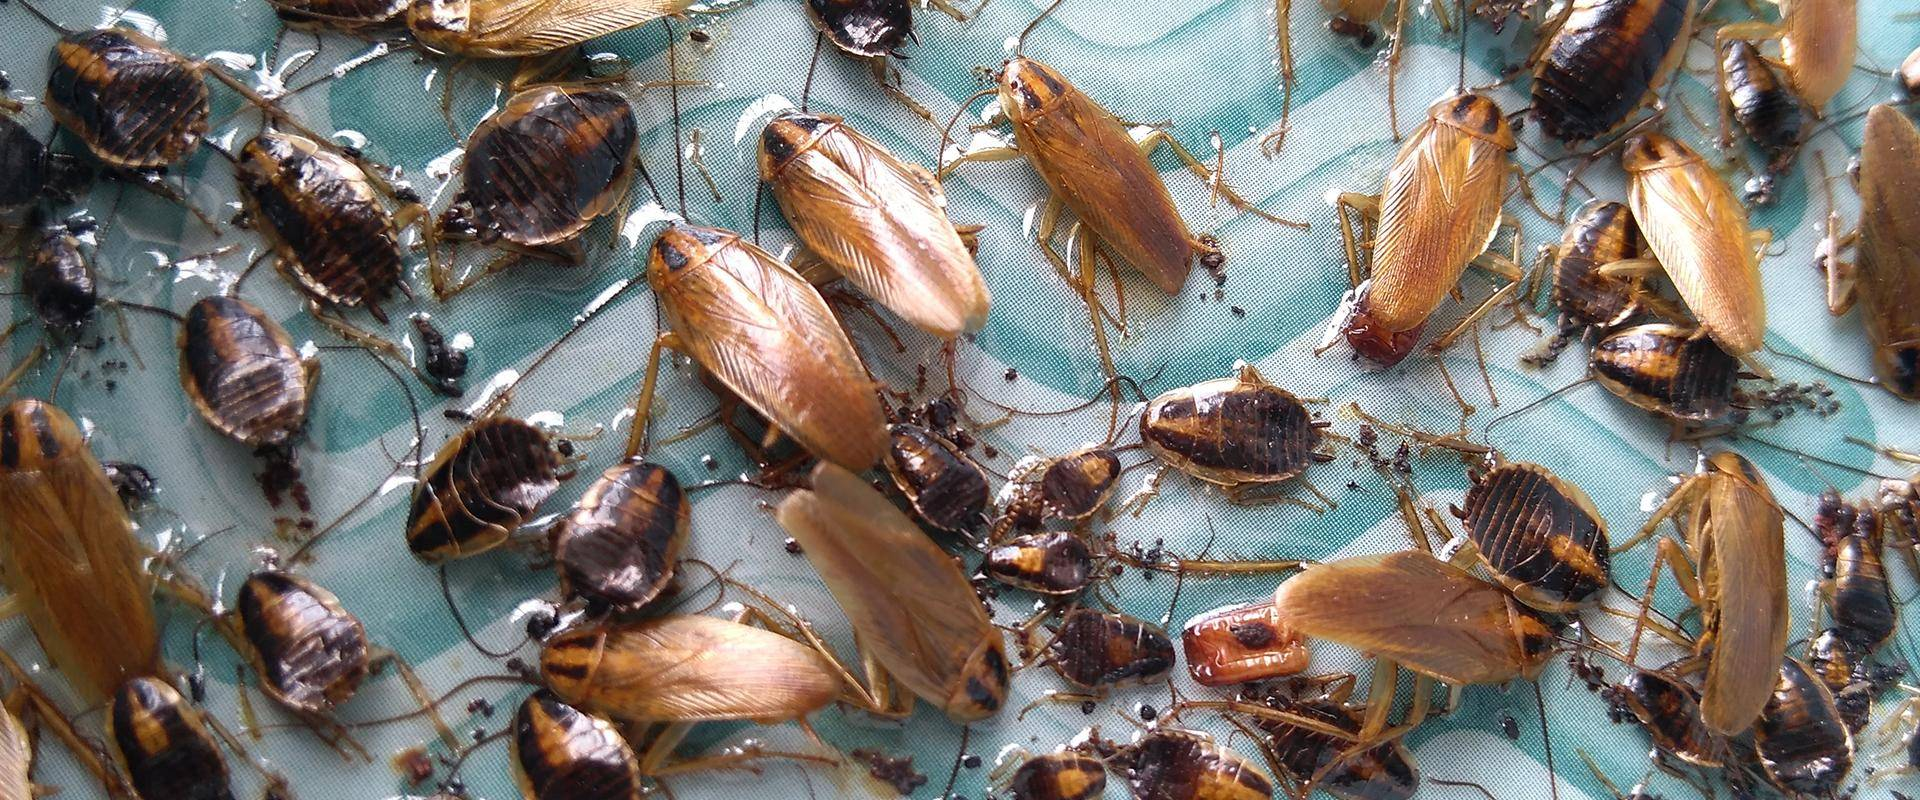 cockroaches on glueboard